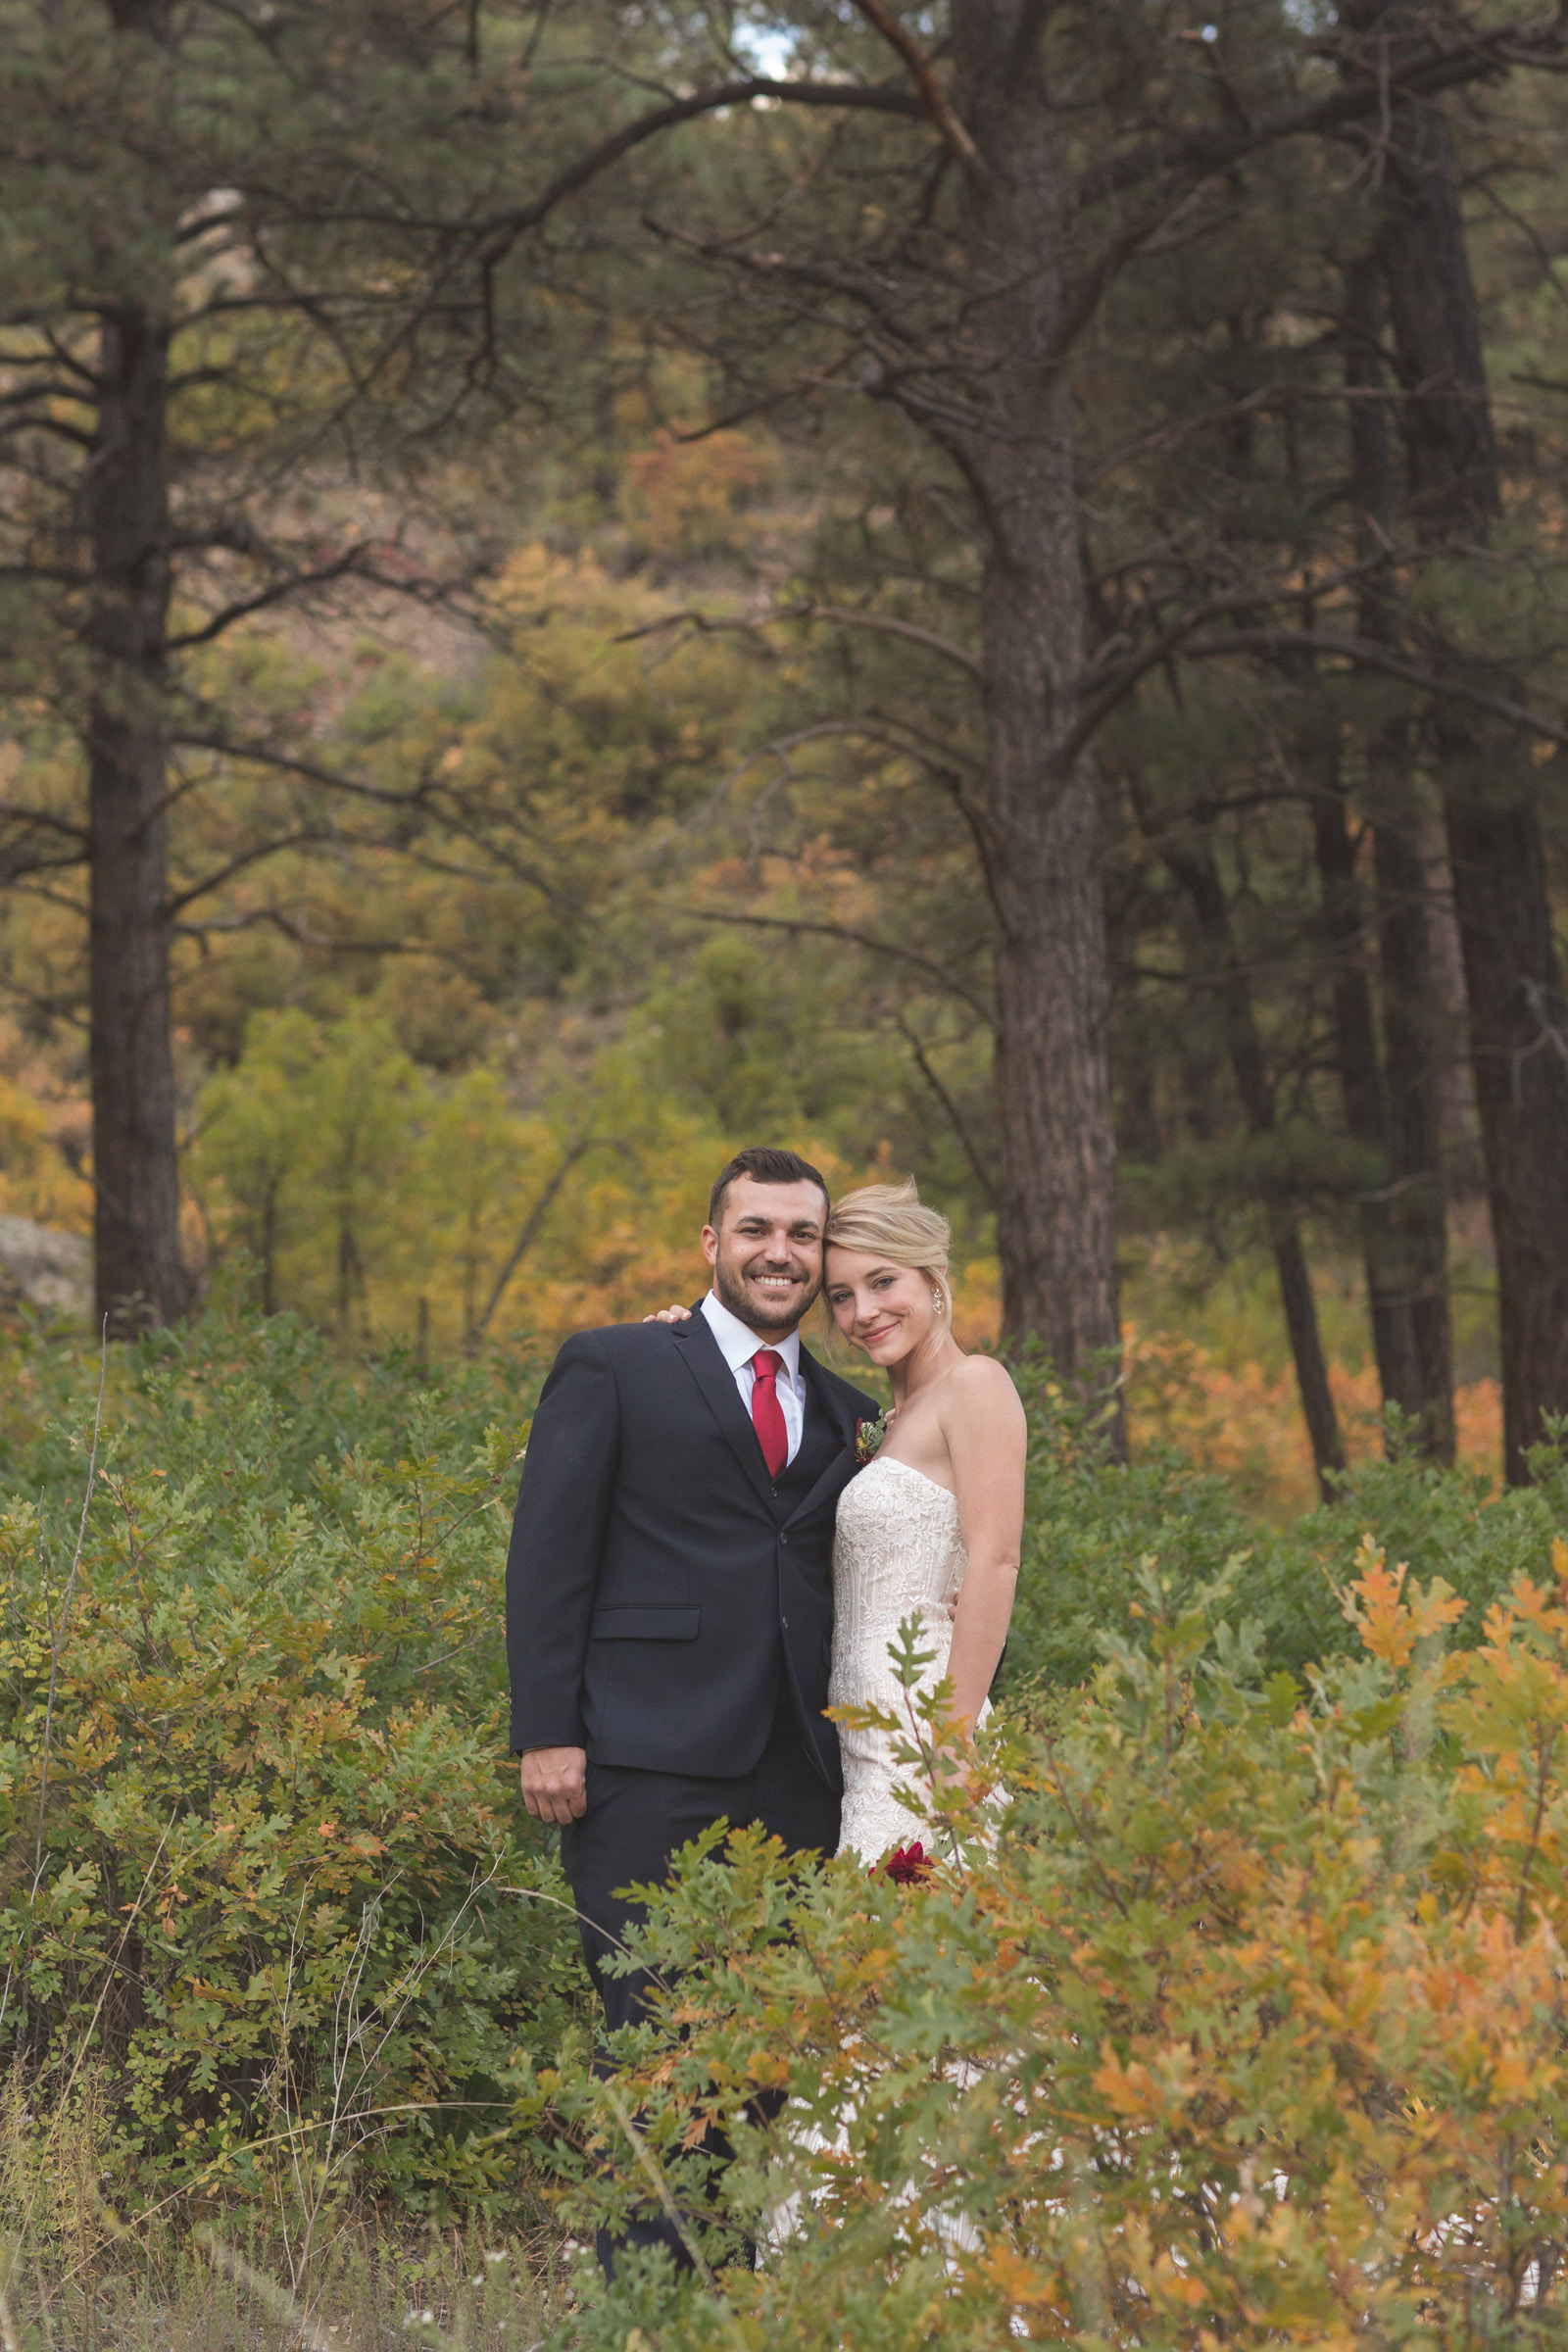 137-beautiful-bride-and-groom-photojournalist-portraits-at-elopement-wedding-in-durango-colorado-forest